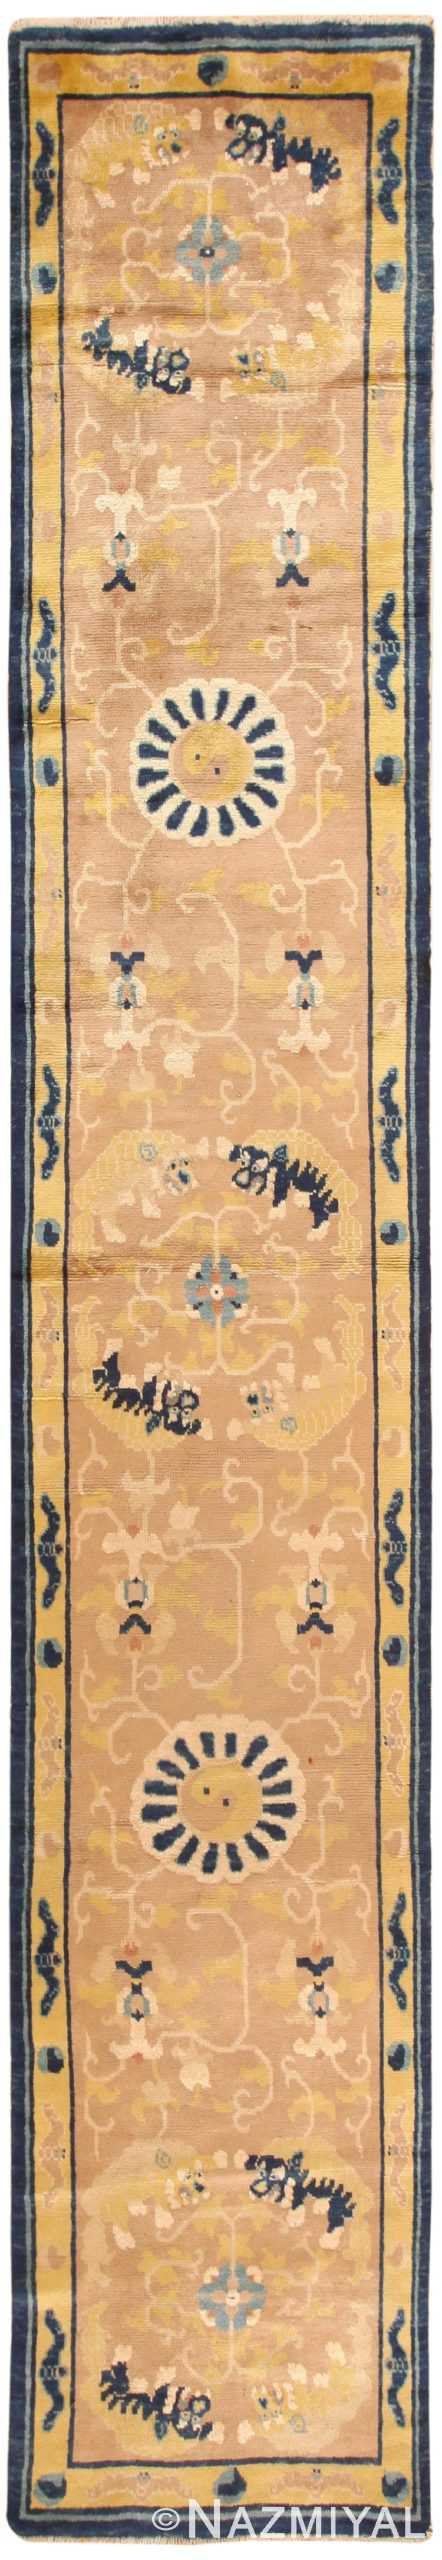 Antique Chinese Runner 48975